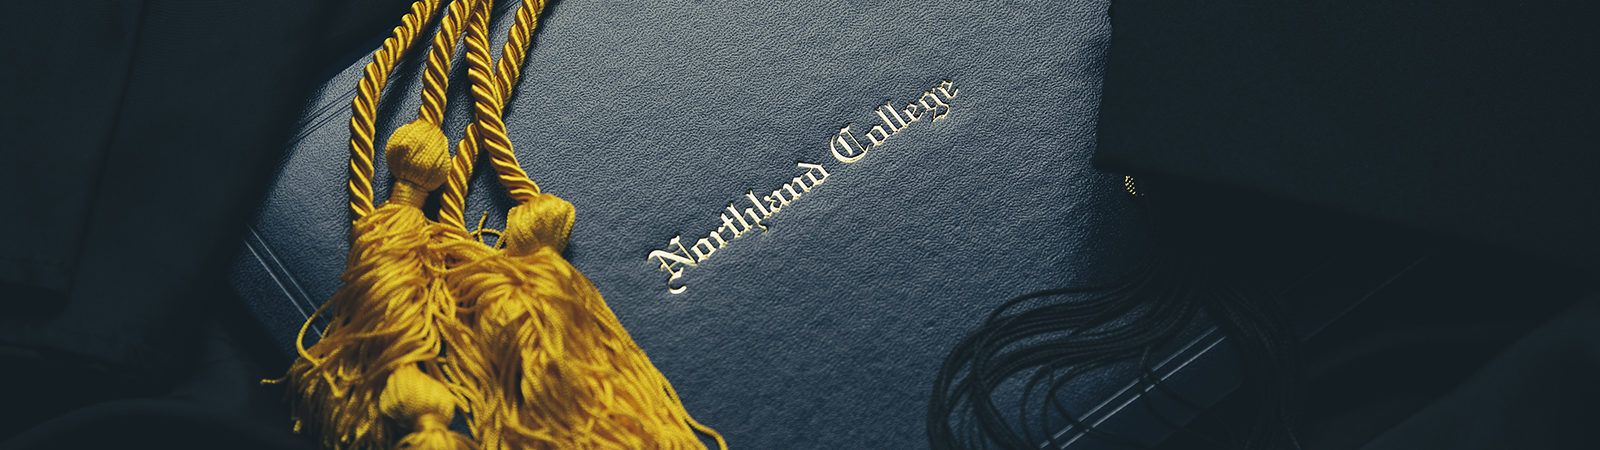 Northland College Diploma